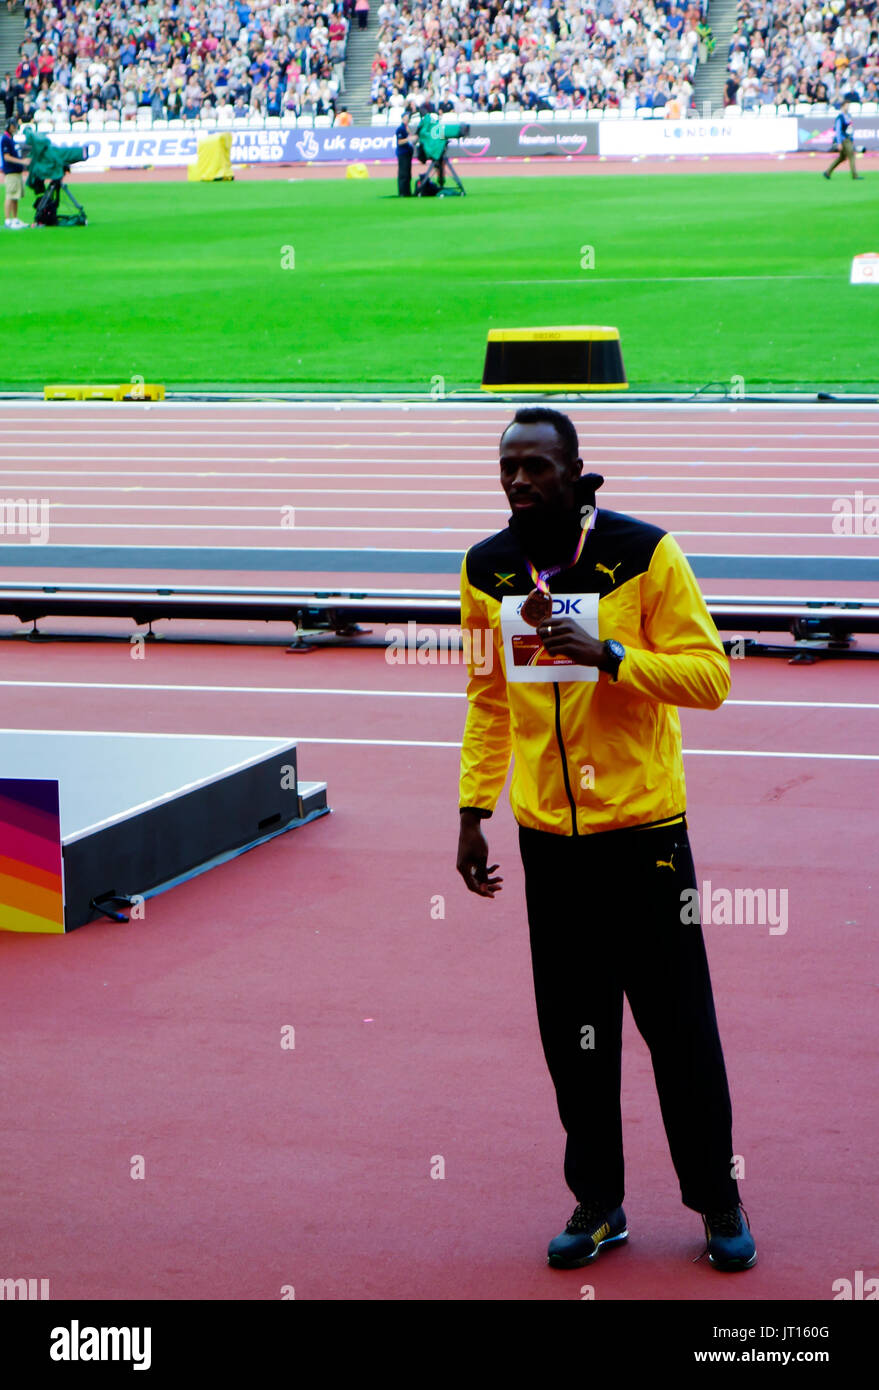 Usain Bolt poses with his bronze medal at the men's 100m award ceremony at the London 2017 IAAF World Championships in London, Britain, 06 August 2017 - Stock Image